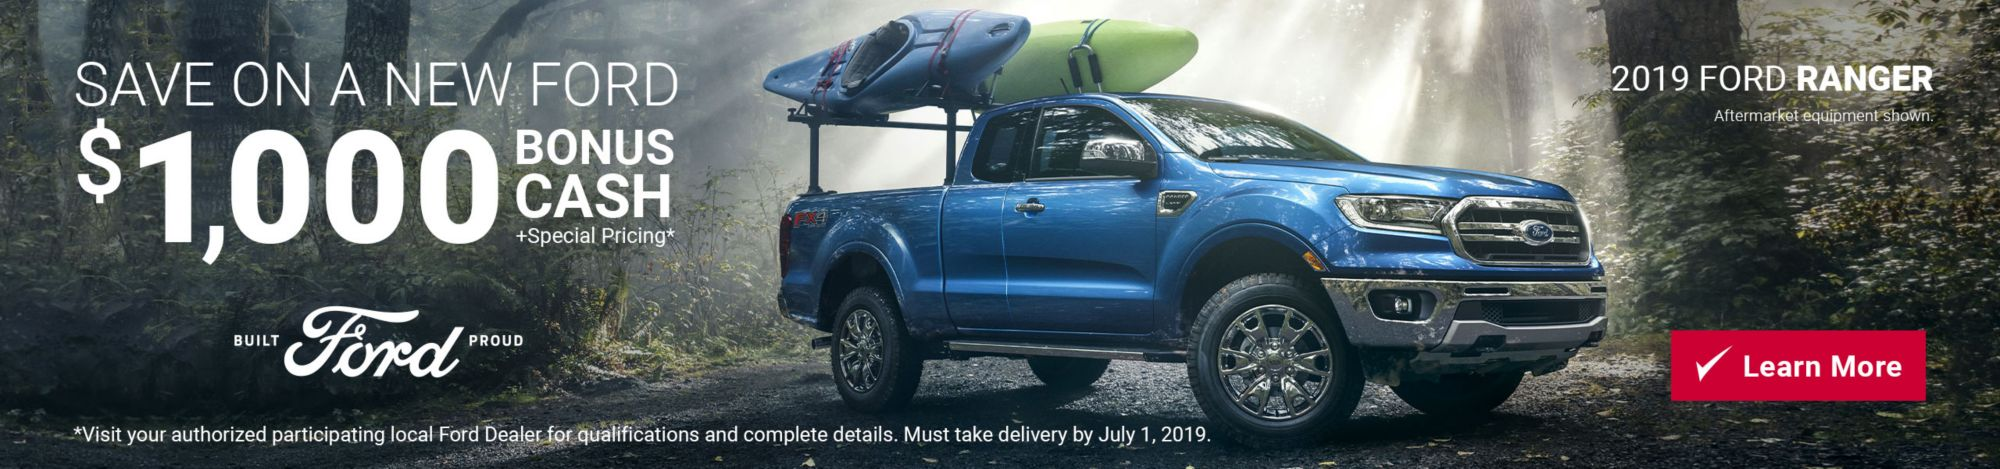 Save on a new Ford. Feature: 2019 Ford Ranger. Get $1000 Bonus Cash plus special pricing. Exclusions apply. Click here to learn more. Built Ford Proud.